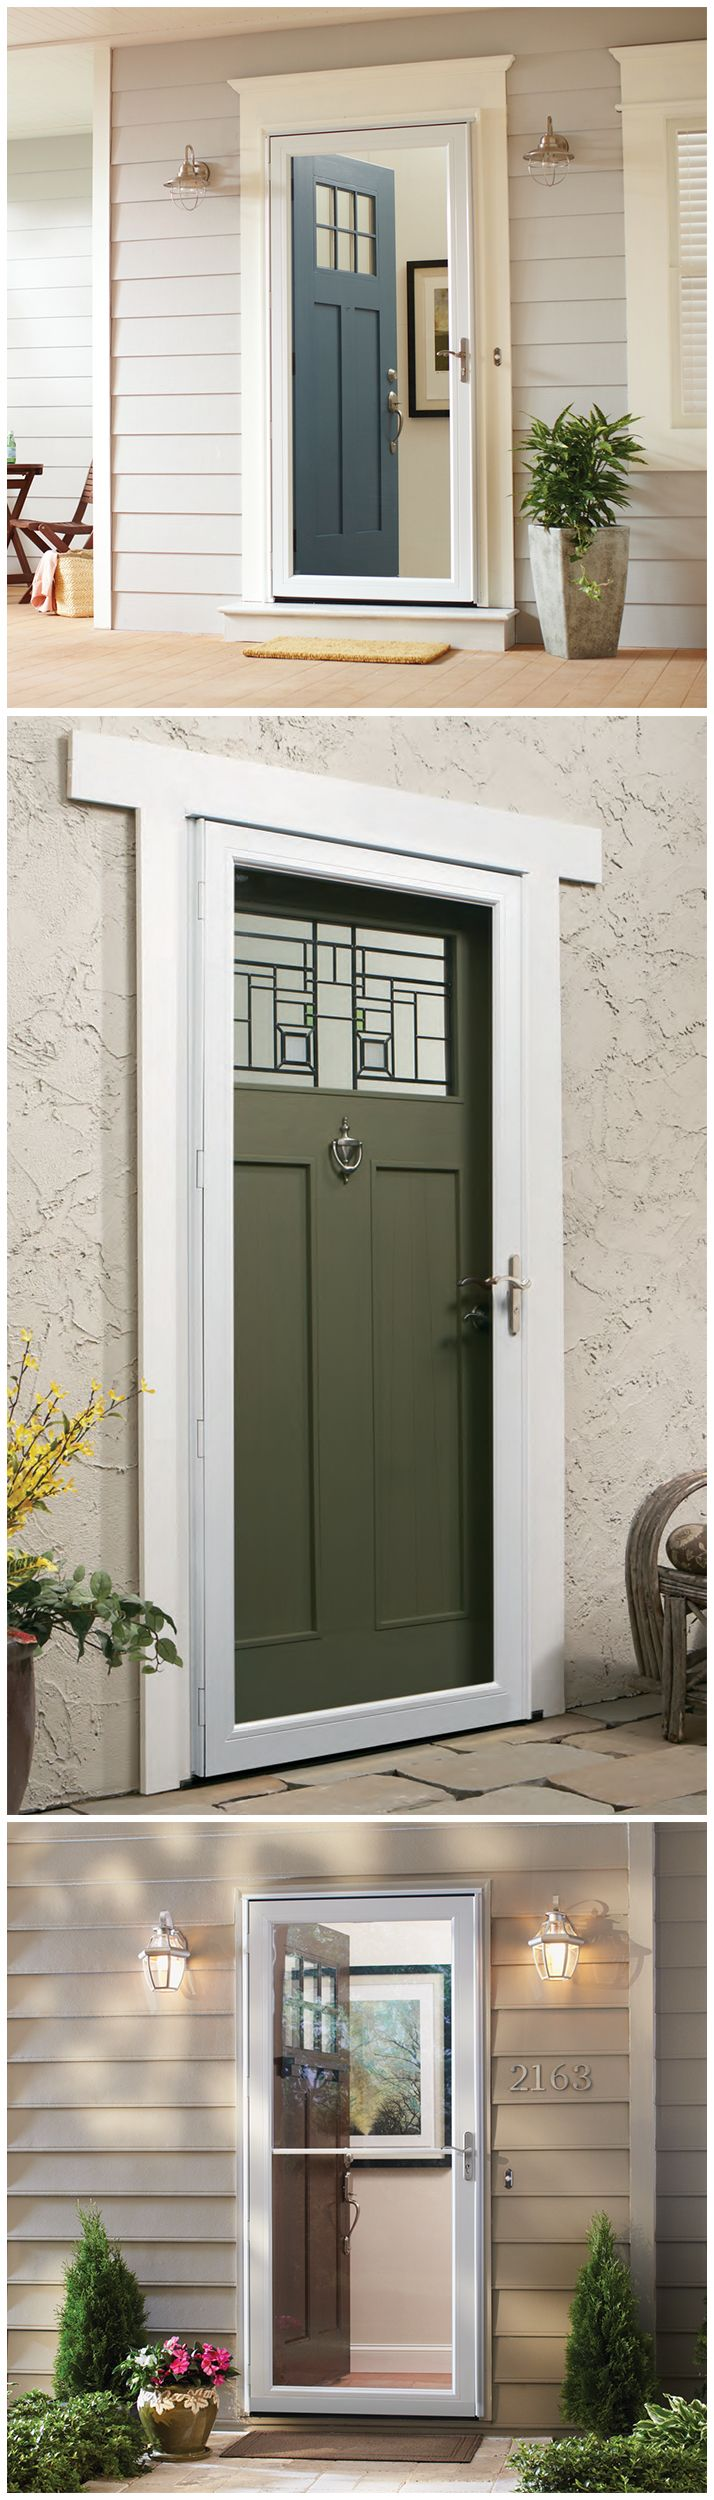 Storm Doors Doors Home Home Remodeling House Styles